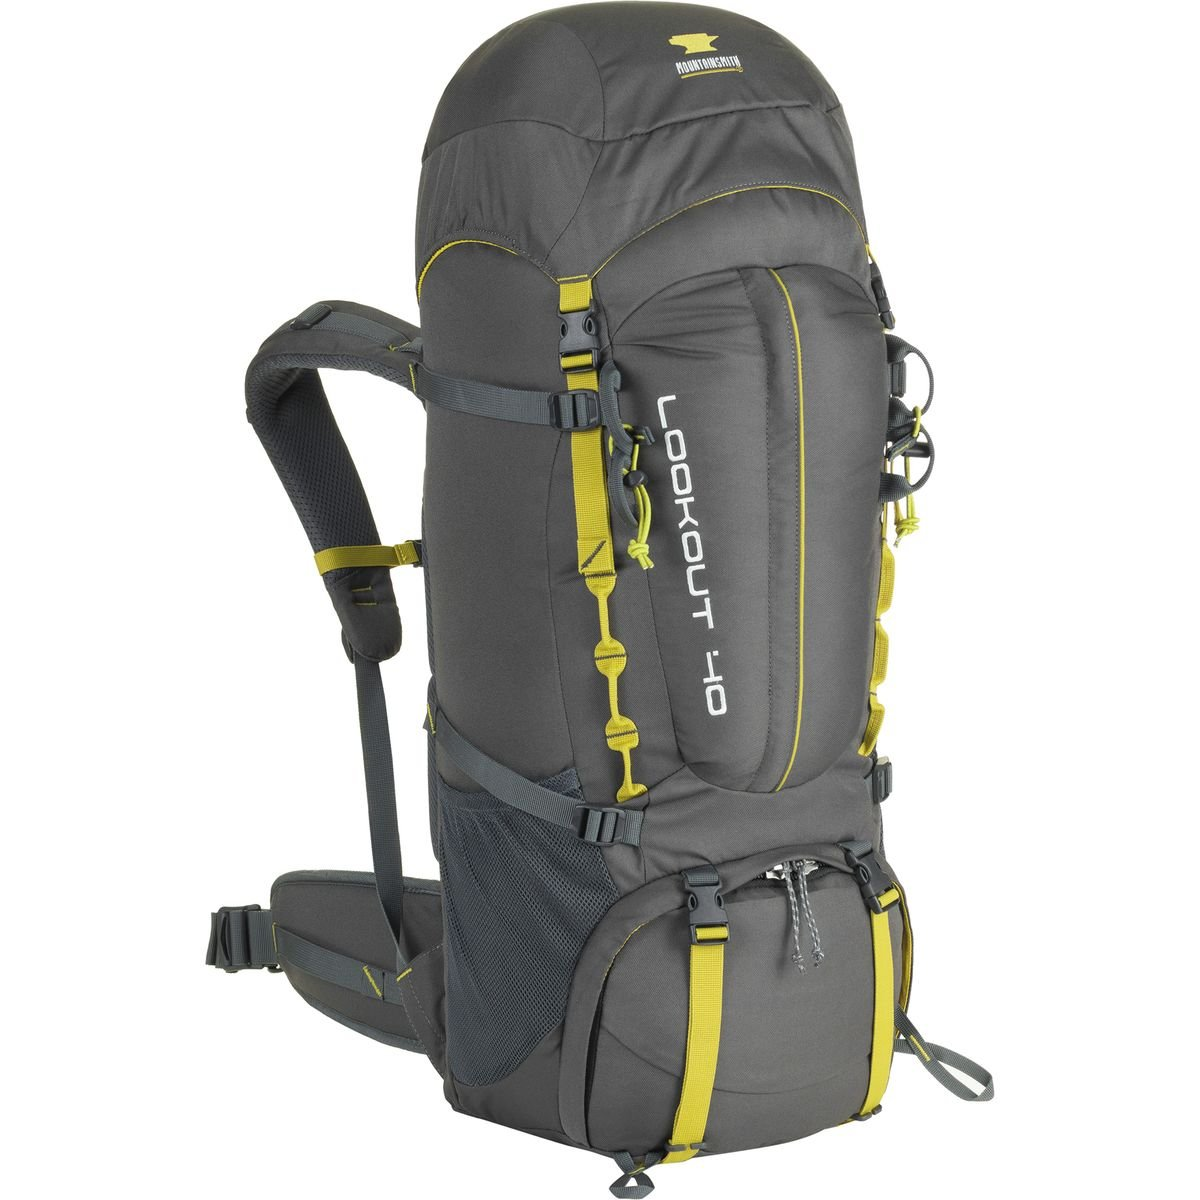 Mountainsmith Lookout 40lバックパック One Size グレー(Asphalt Grey) B071P6WS28